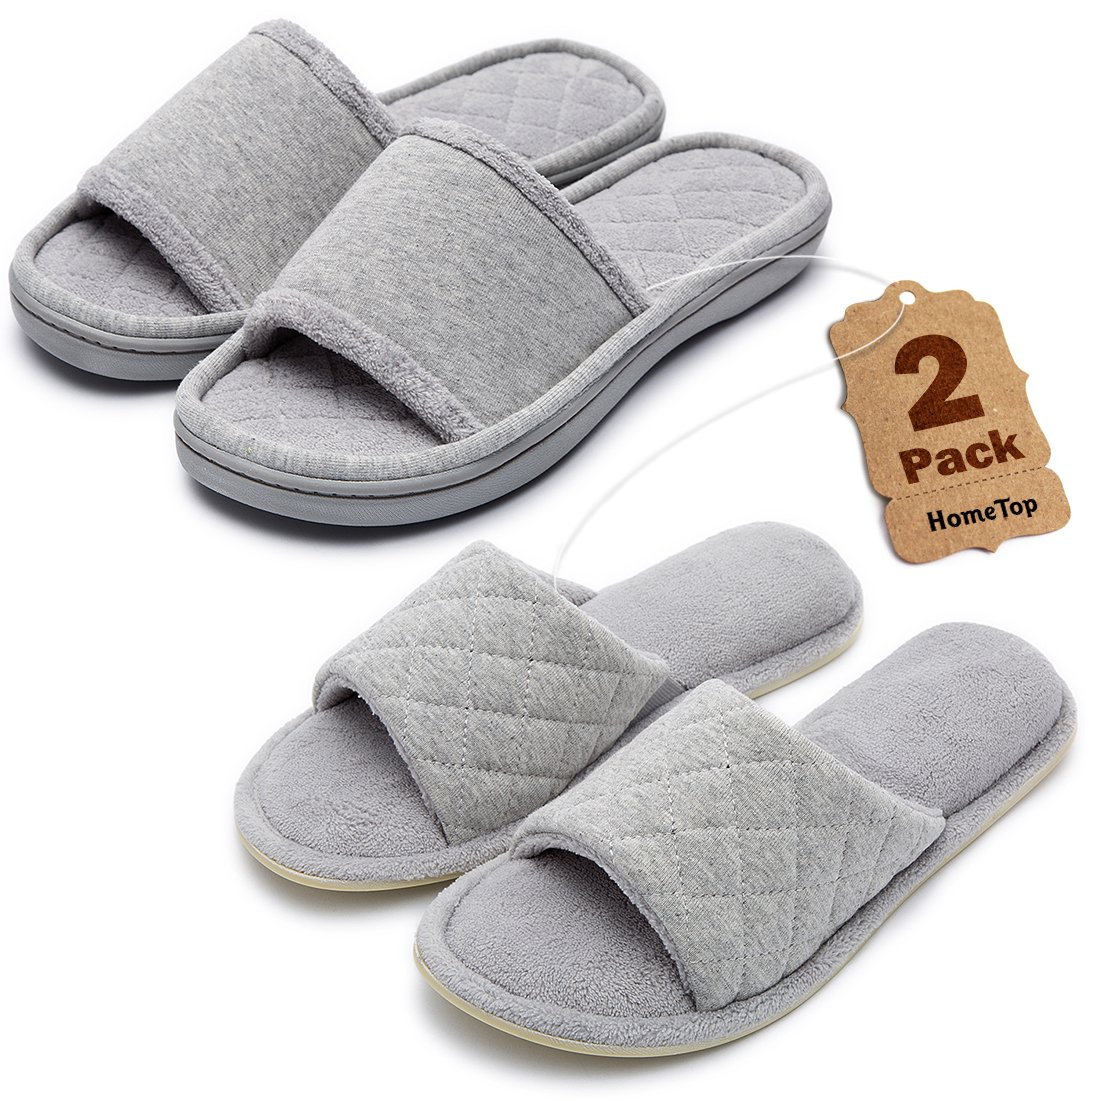 Women's Comfortable Memory Foam House Slippers Spa Shoes Set (2-Pack) with Cotton Quilted Accent and Plush Fleece Lining (Large/9-10 B(M) US, Gray)